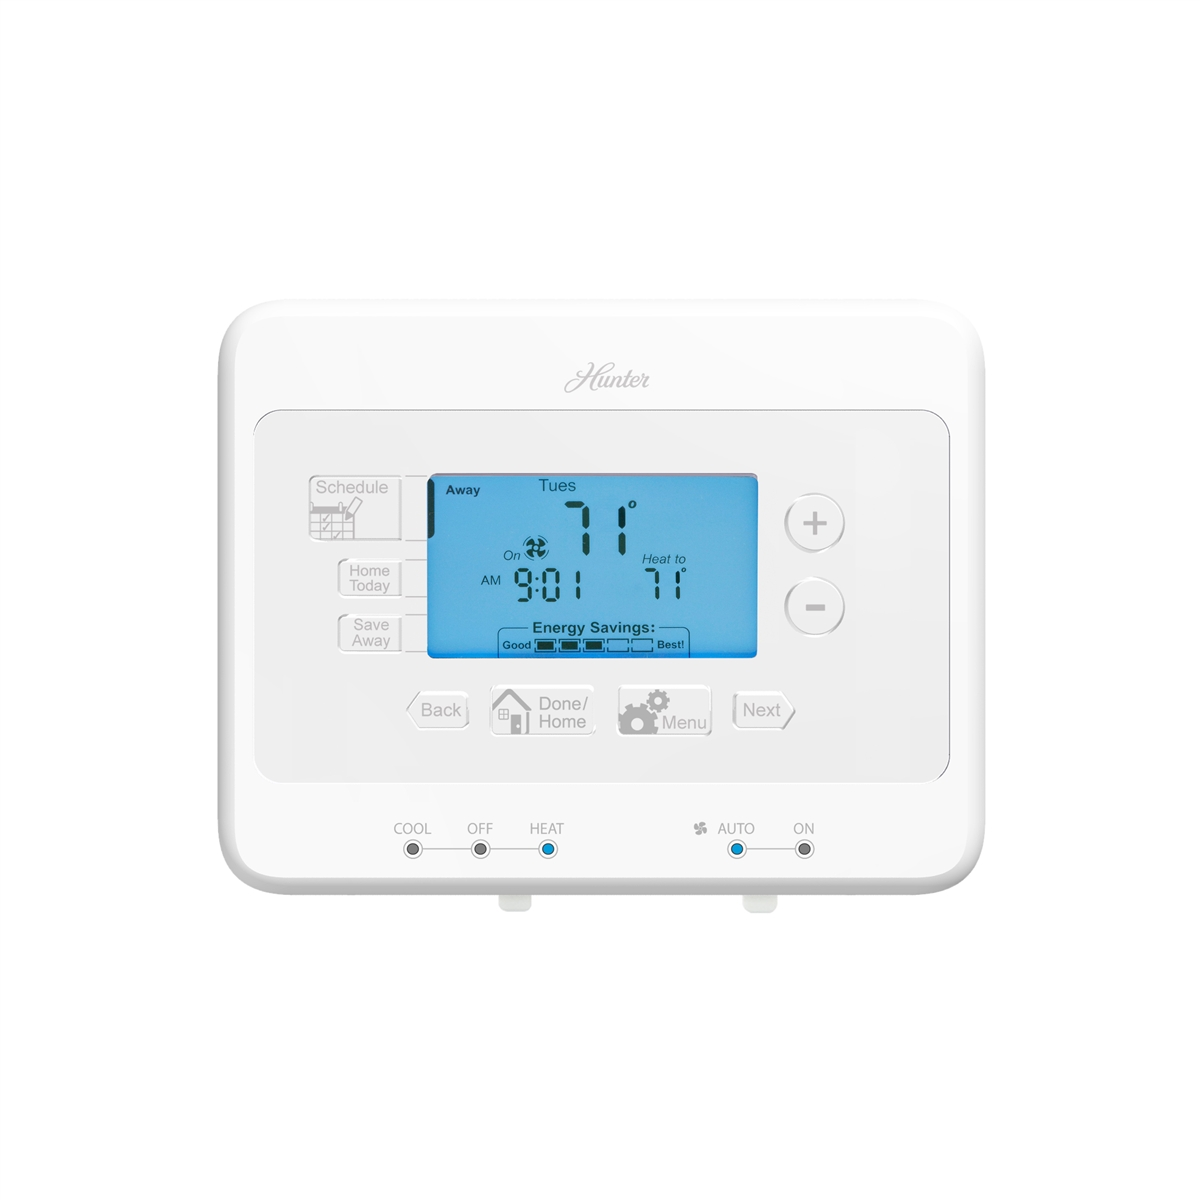 hight resolution of 44378 2 1410336795 universal 7 day programmable thermostat 44378 hunter 44378 wiring diagram